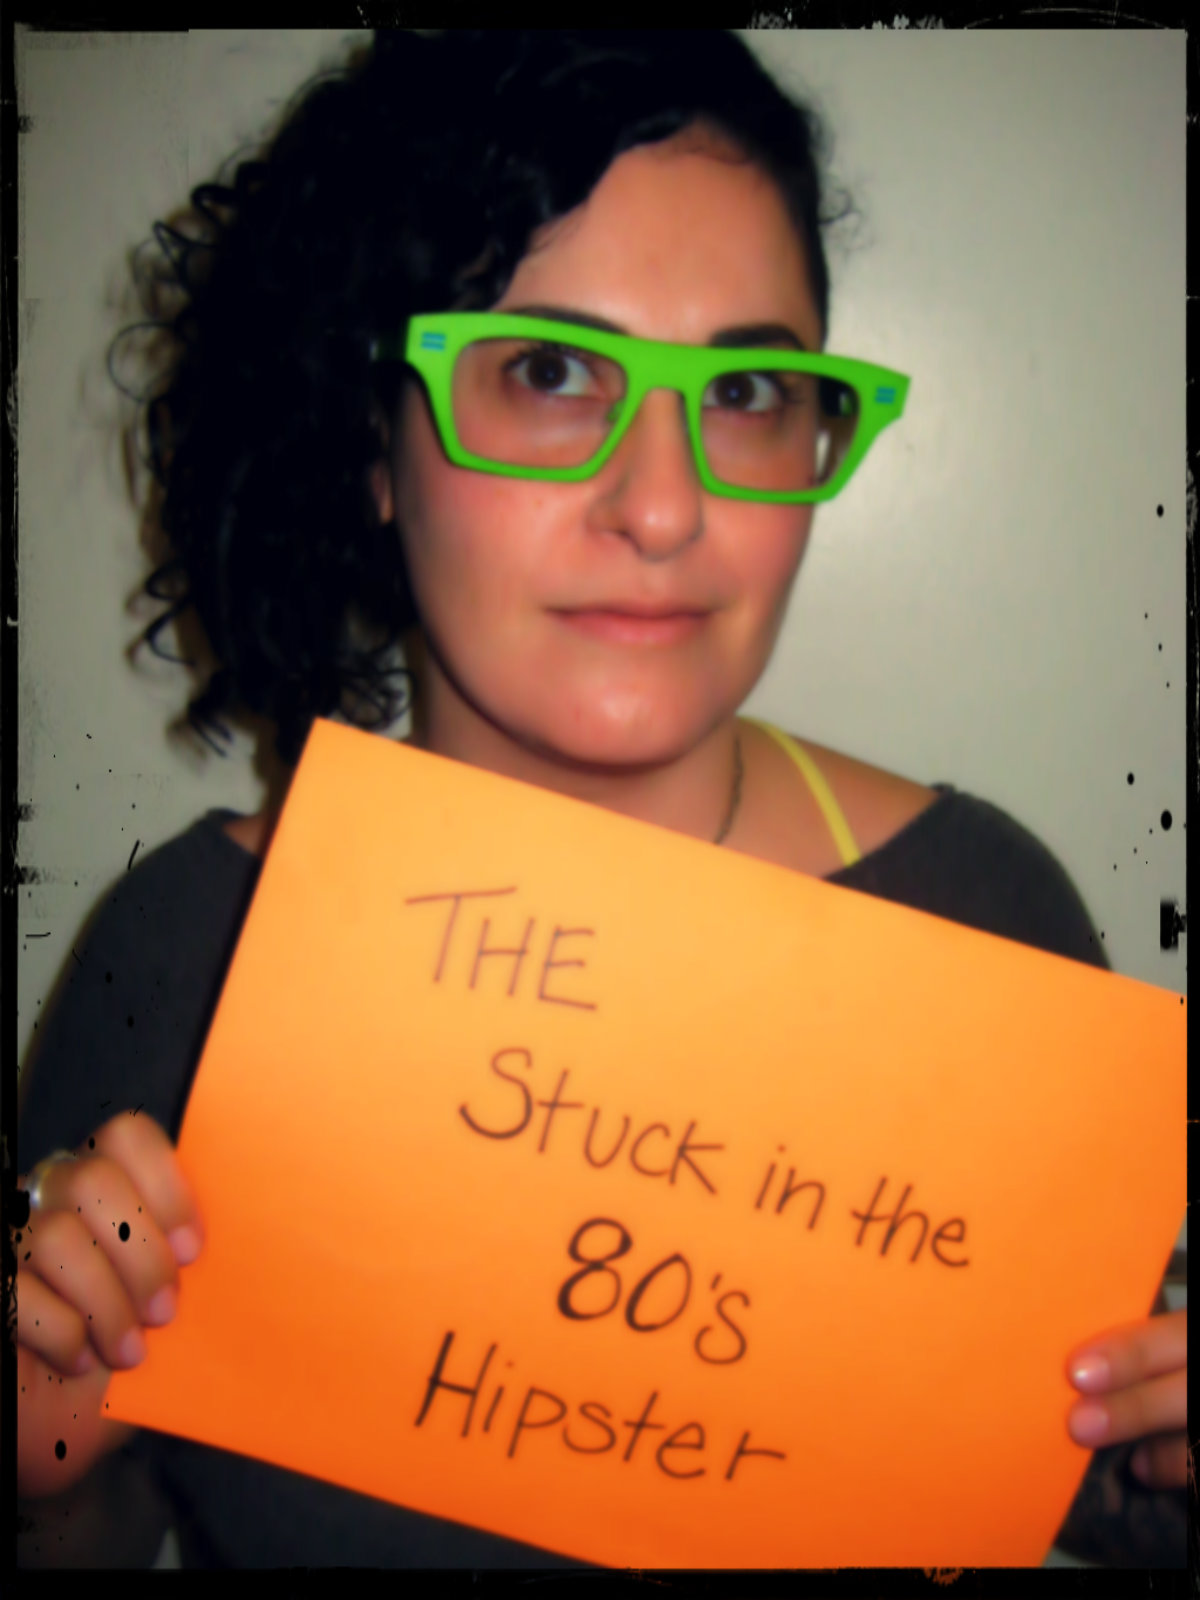 The Stuck In The 80's Hipster